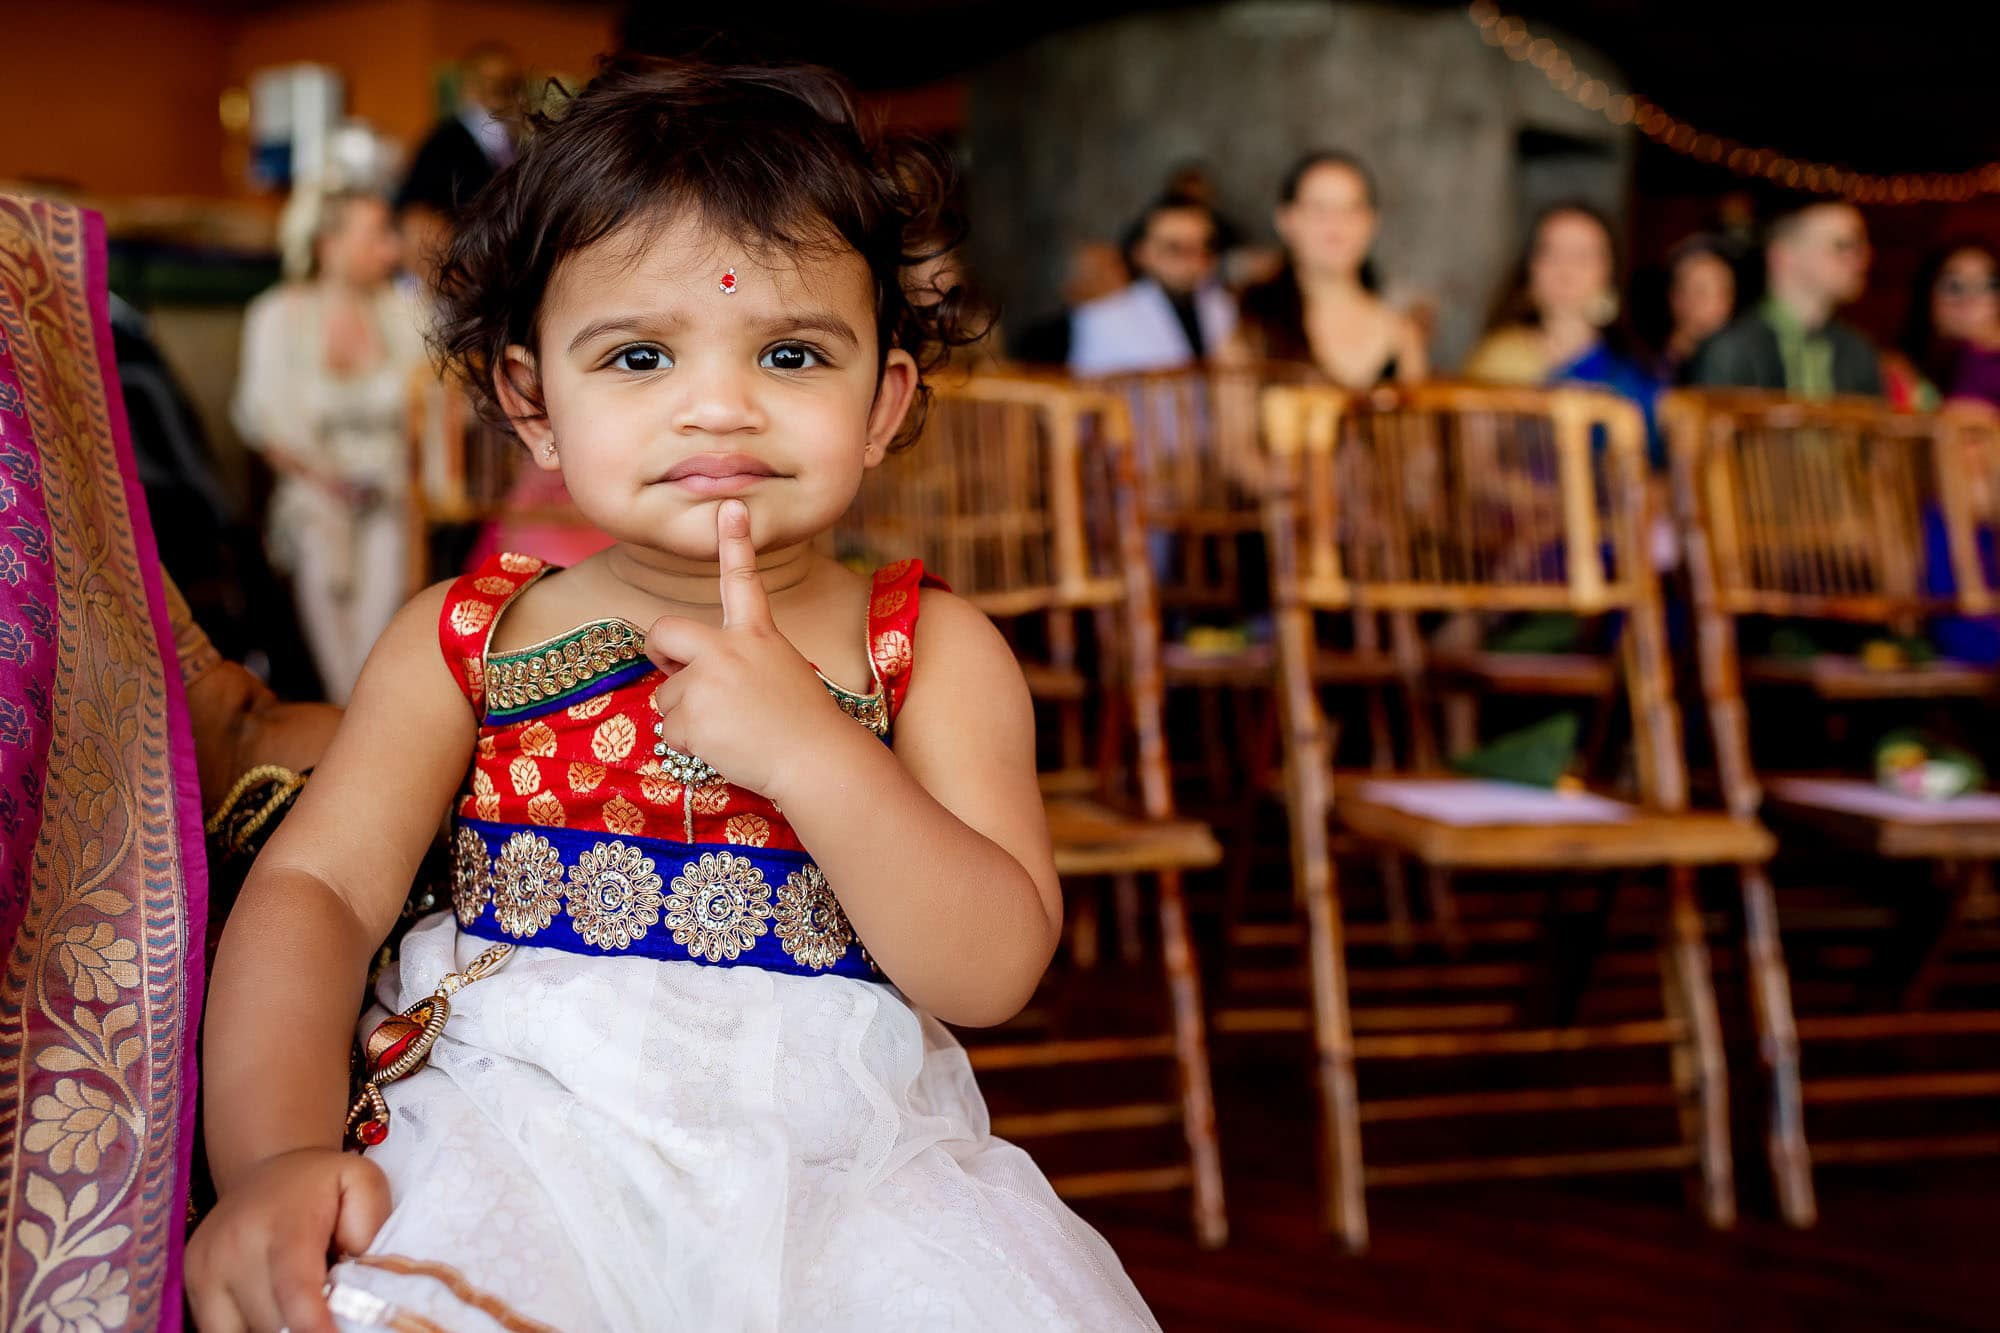 Cute kid among the guests.